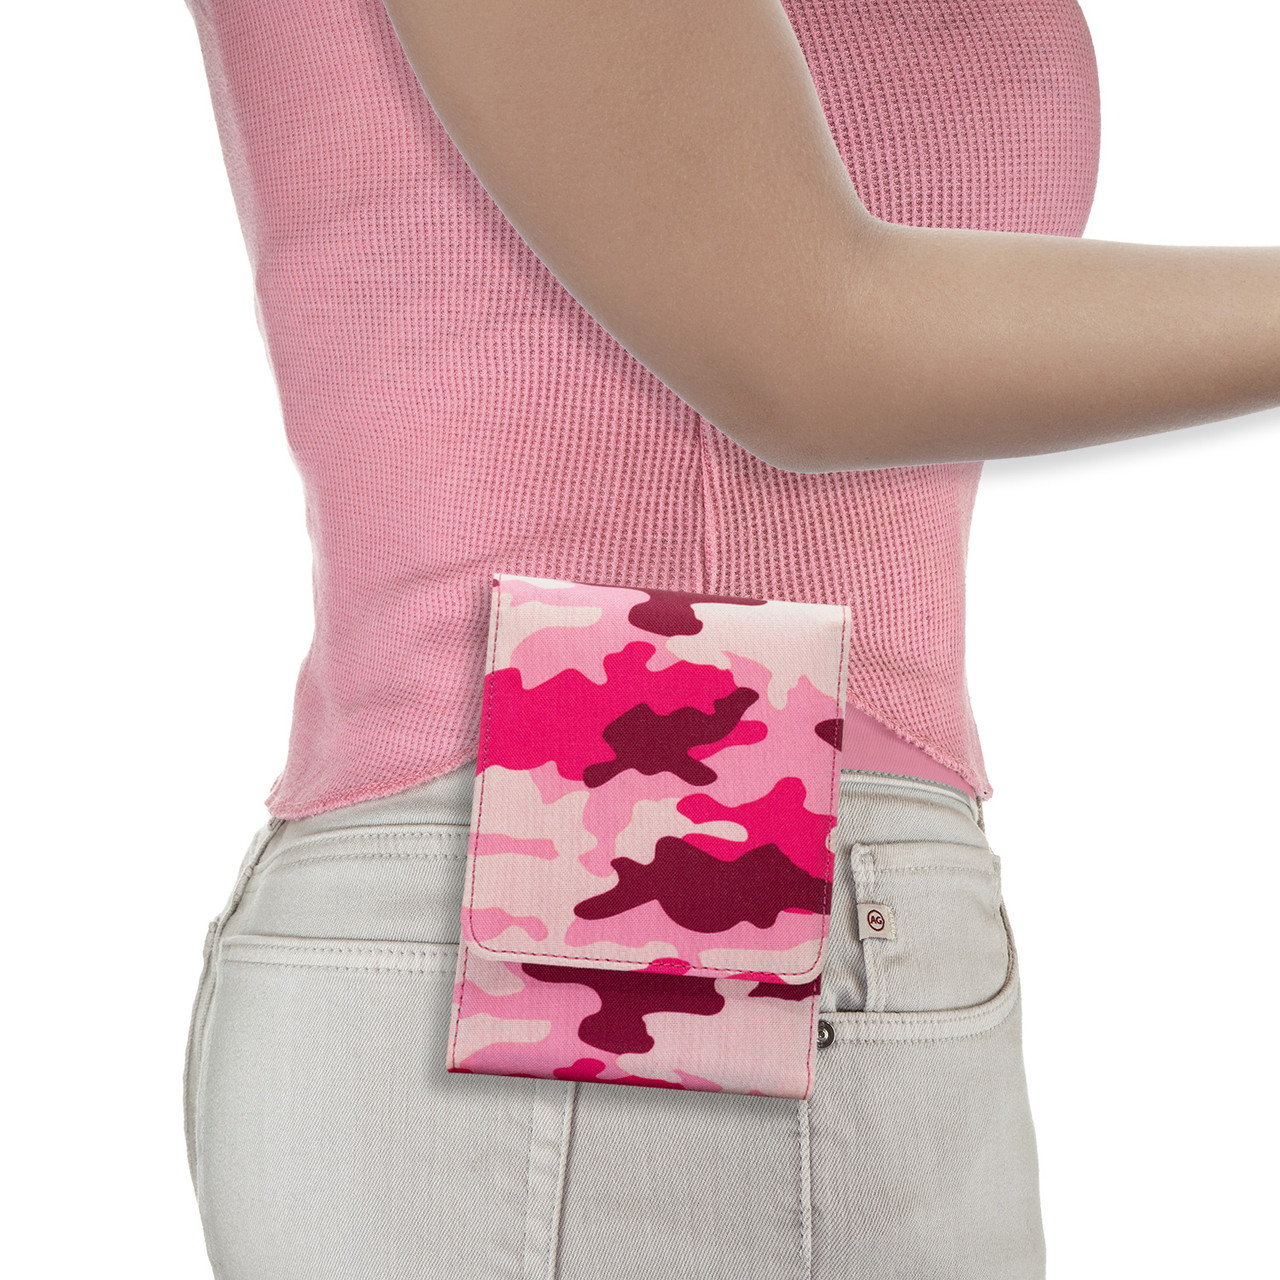 Walther PPQ Sub-Compact Pink Camouflage Series Holster